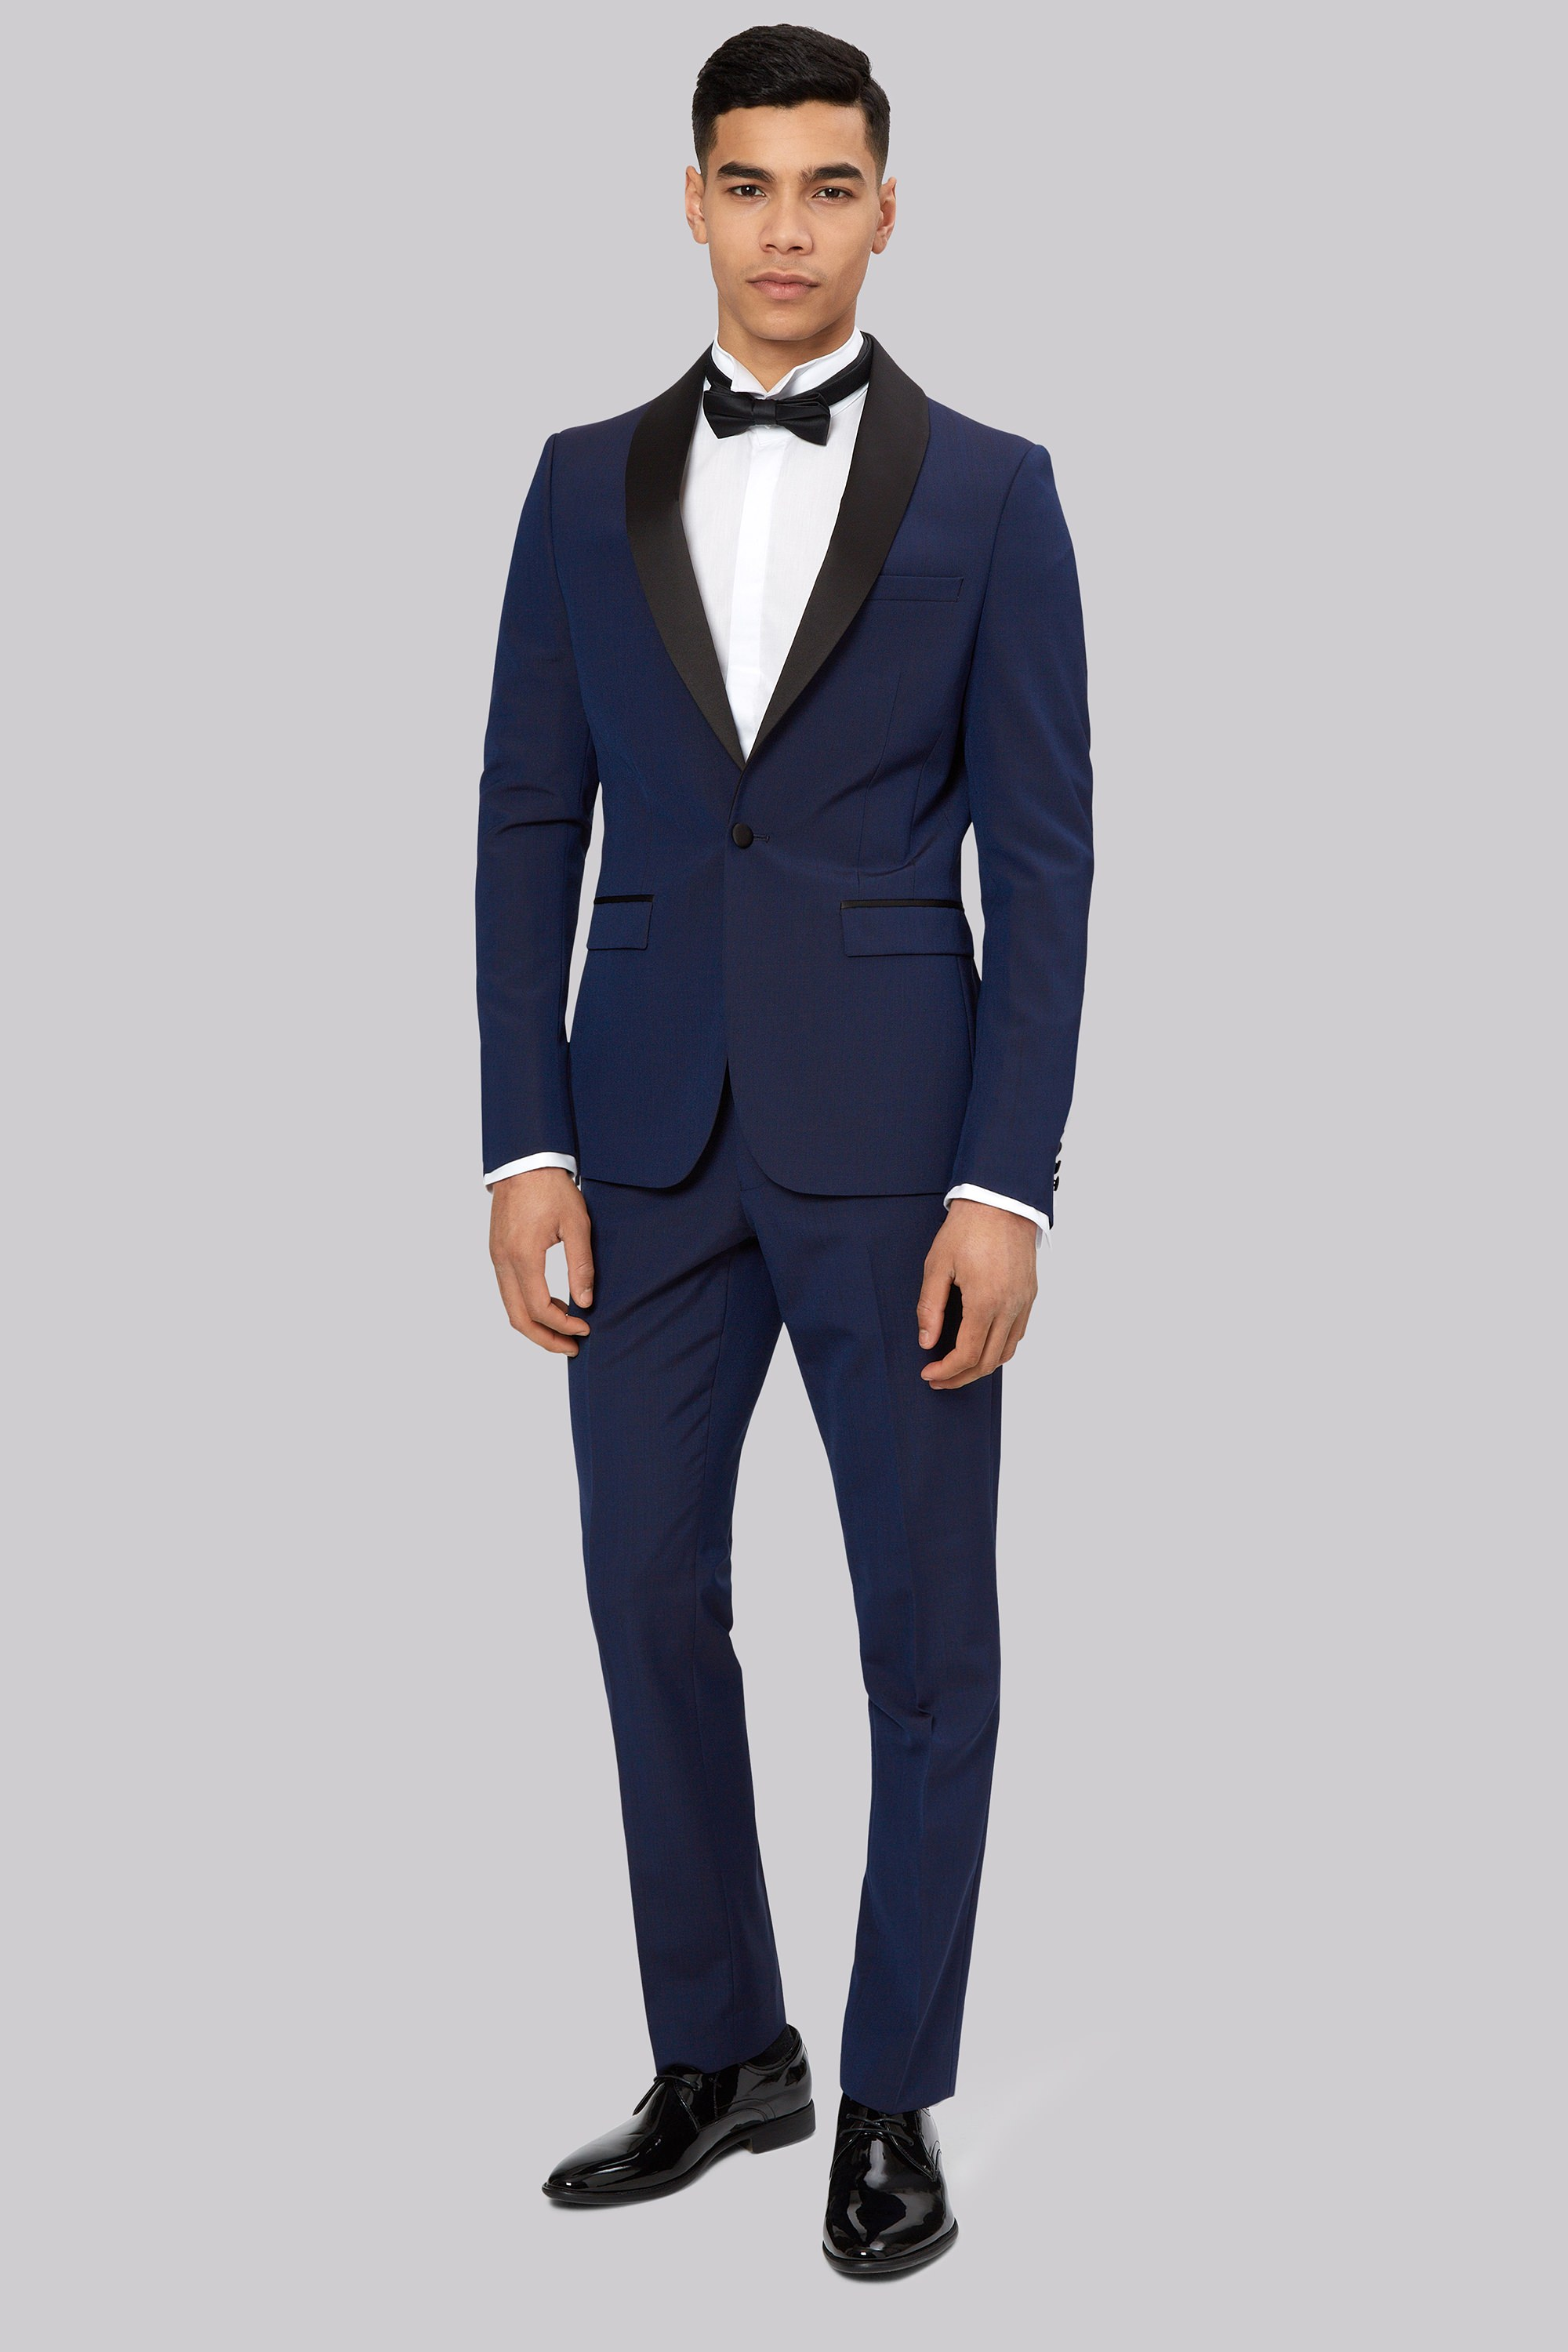 London Skinny Fit Blue Dress Suit